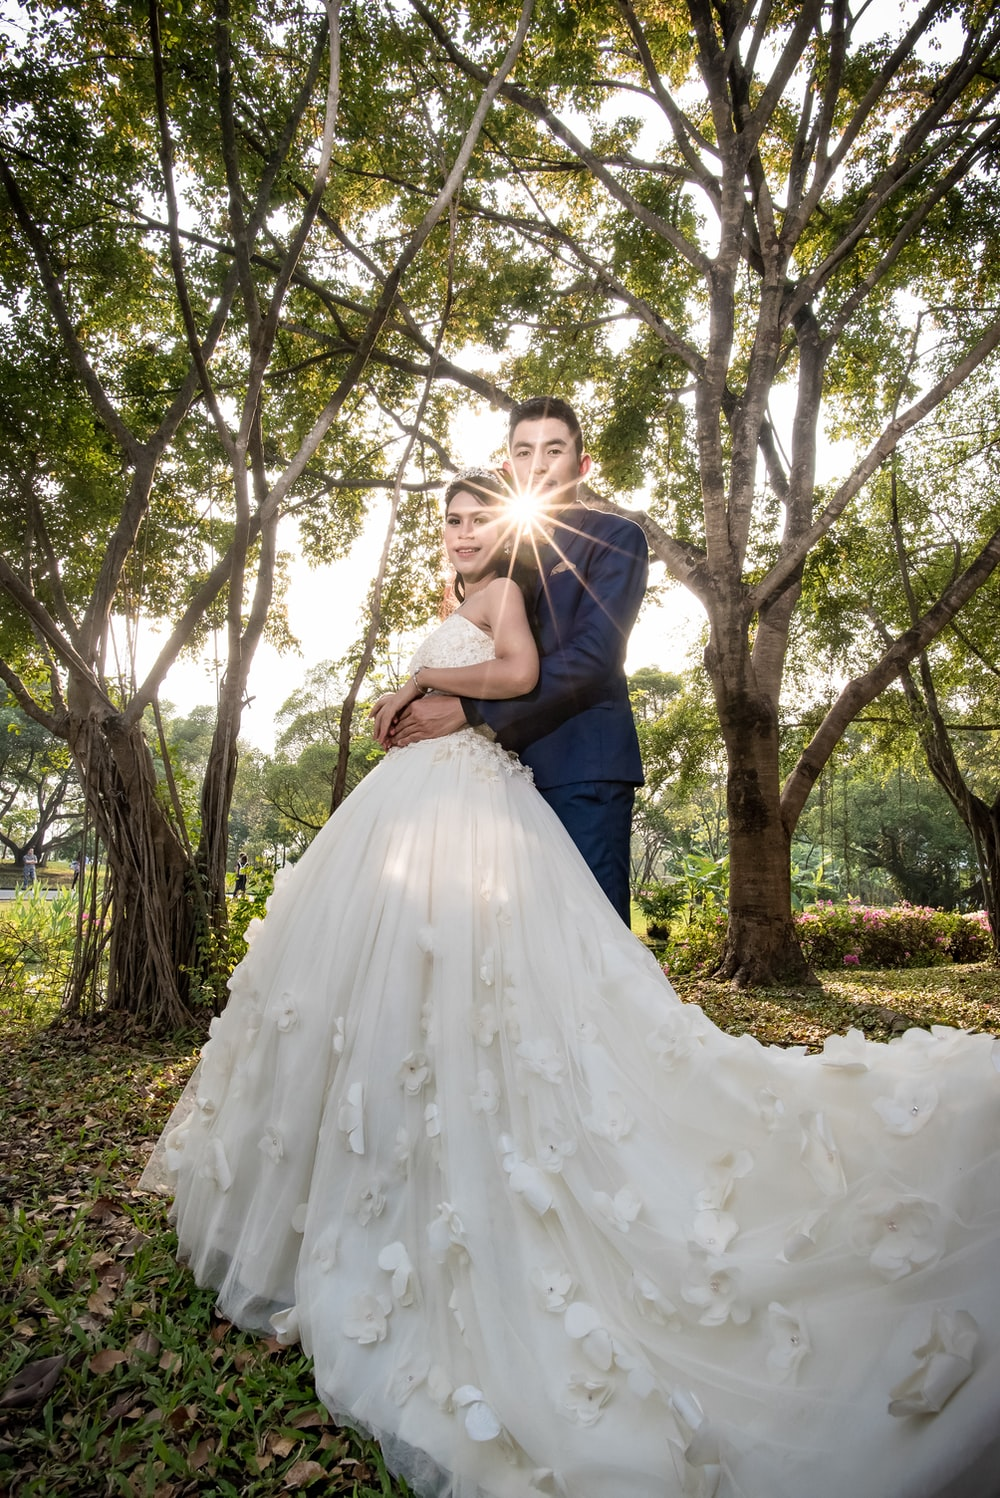 Wedding Gown Pictures Download Free Images On Unsplash,Wedding Dress Sample Sale 2020 Los Angeles